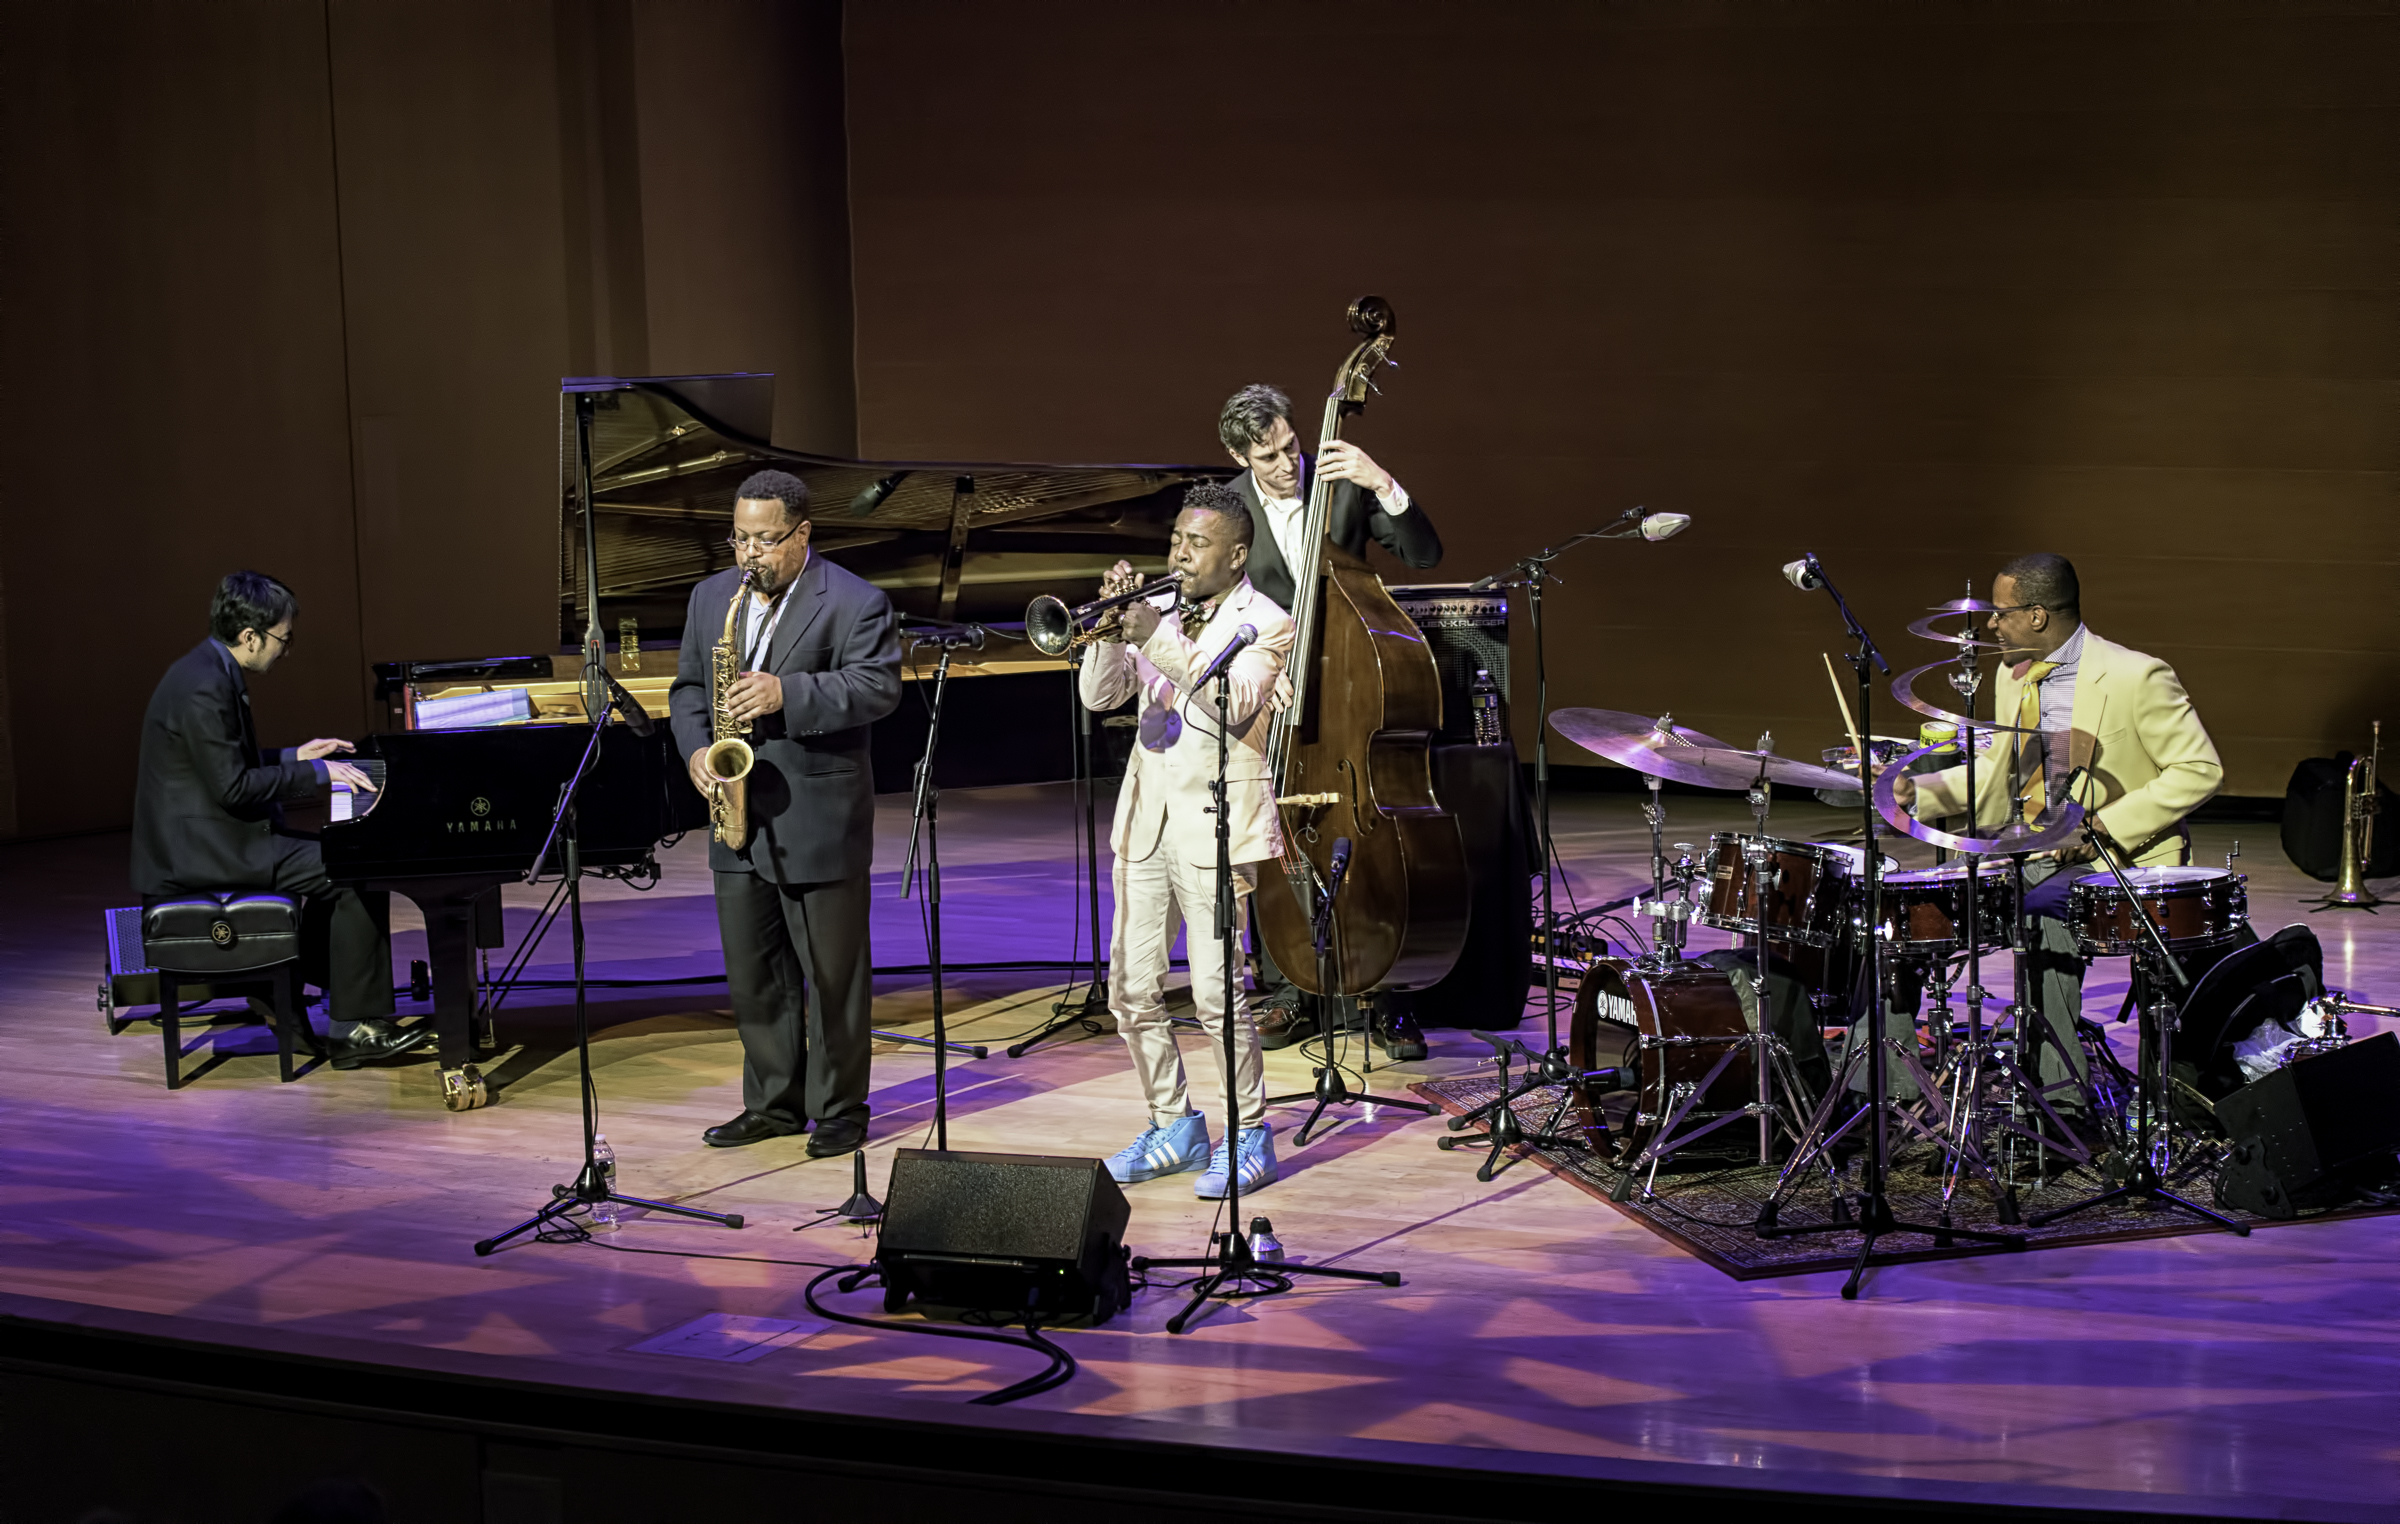 Tadataka Unno Justin Robinson, Roy Hargove, Danton Boller And Quincy Phillips With The Roy Hargrove Quintet At The Musical Instrument Museum (mim) In Phoenix